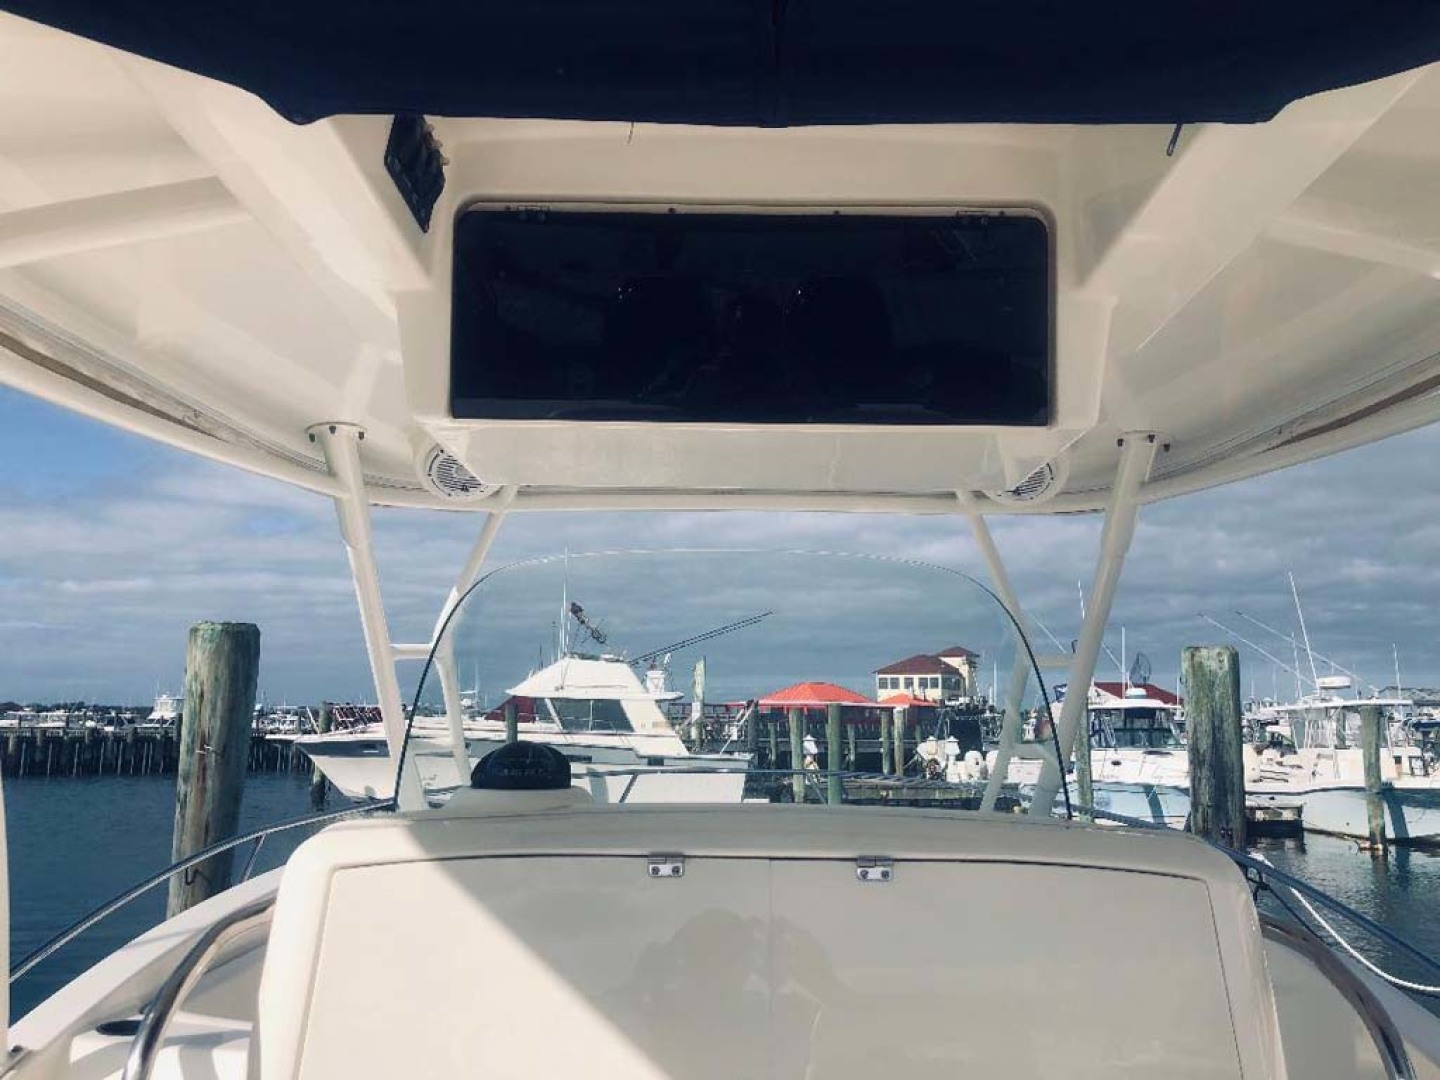 Boston Whaler-320 Outrage 2011 -Cape May-New Jersey-United States-Overhead Compartment-1237221 | Thumbnail